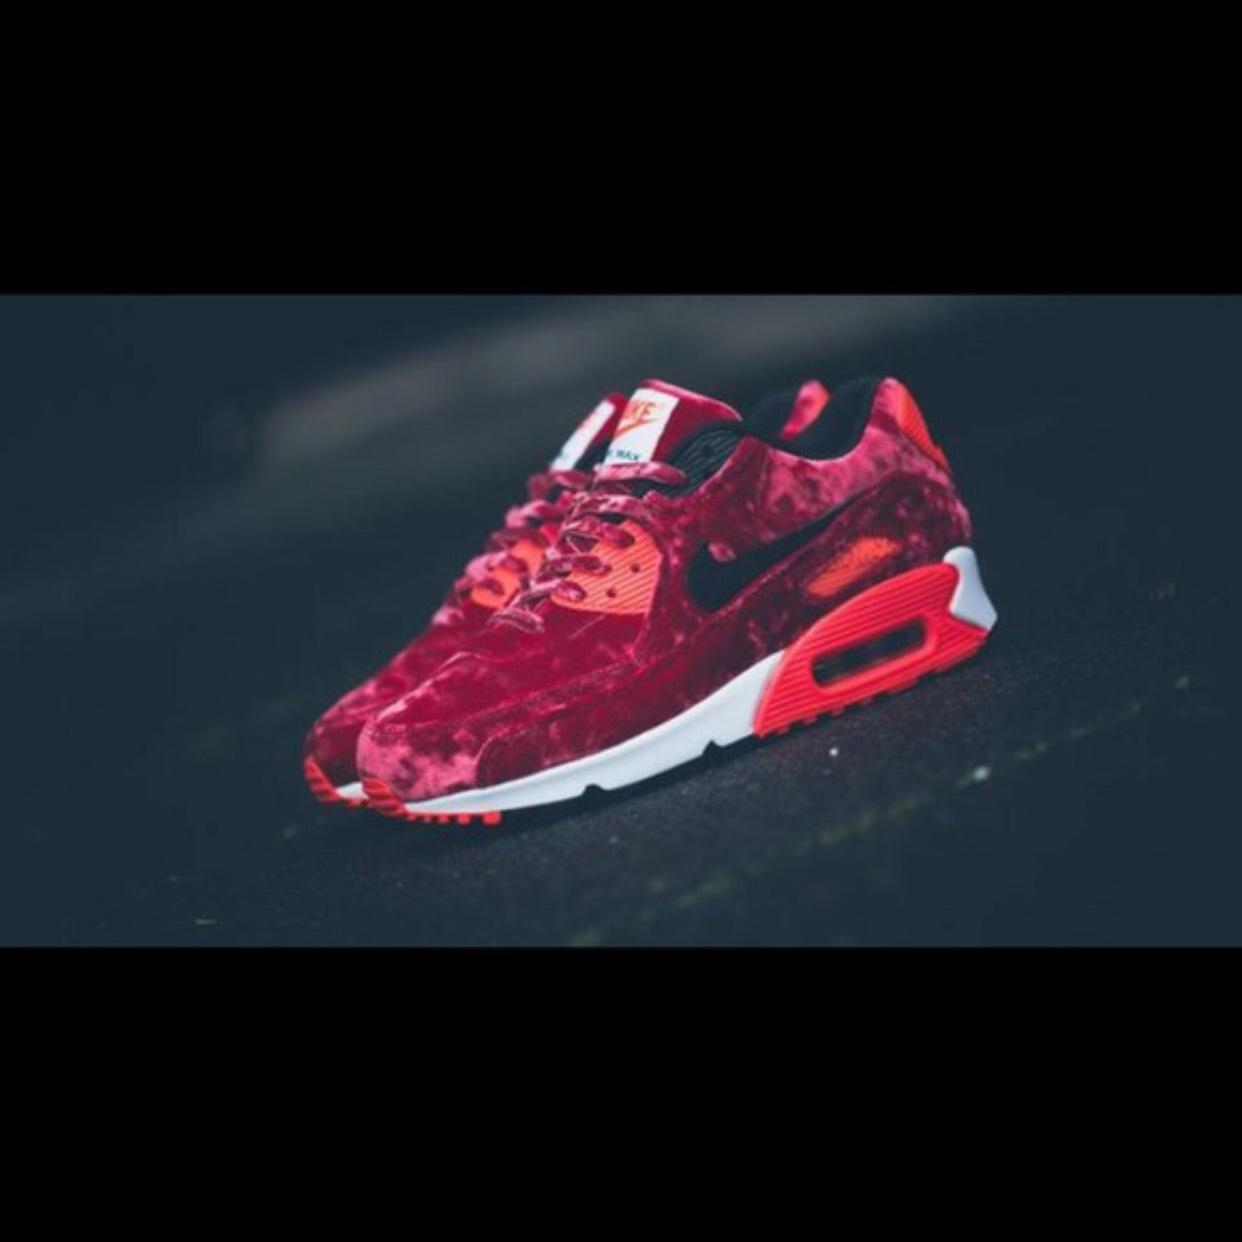 a0eccc77b3a1 ... nike red air max 90 anniversary red velvet. sneakers size us 8